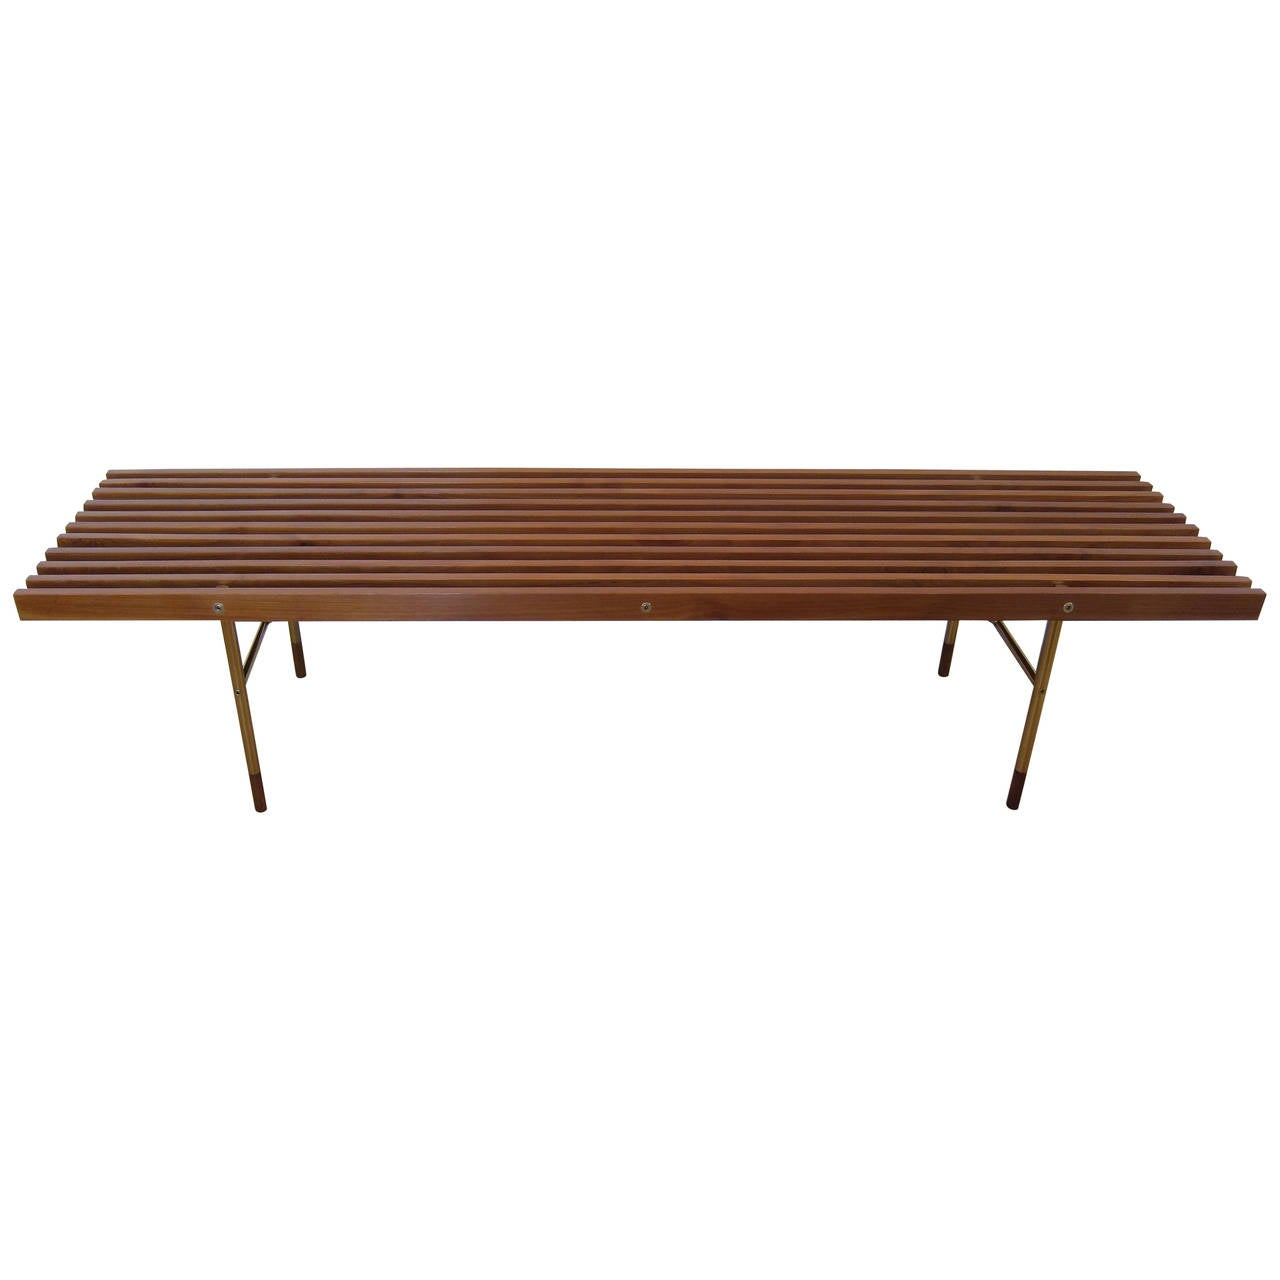 Wood And Brass Slat Bench At 1stdibs